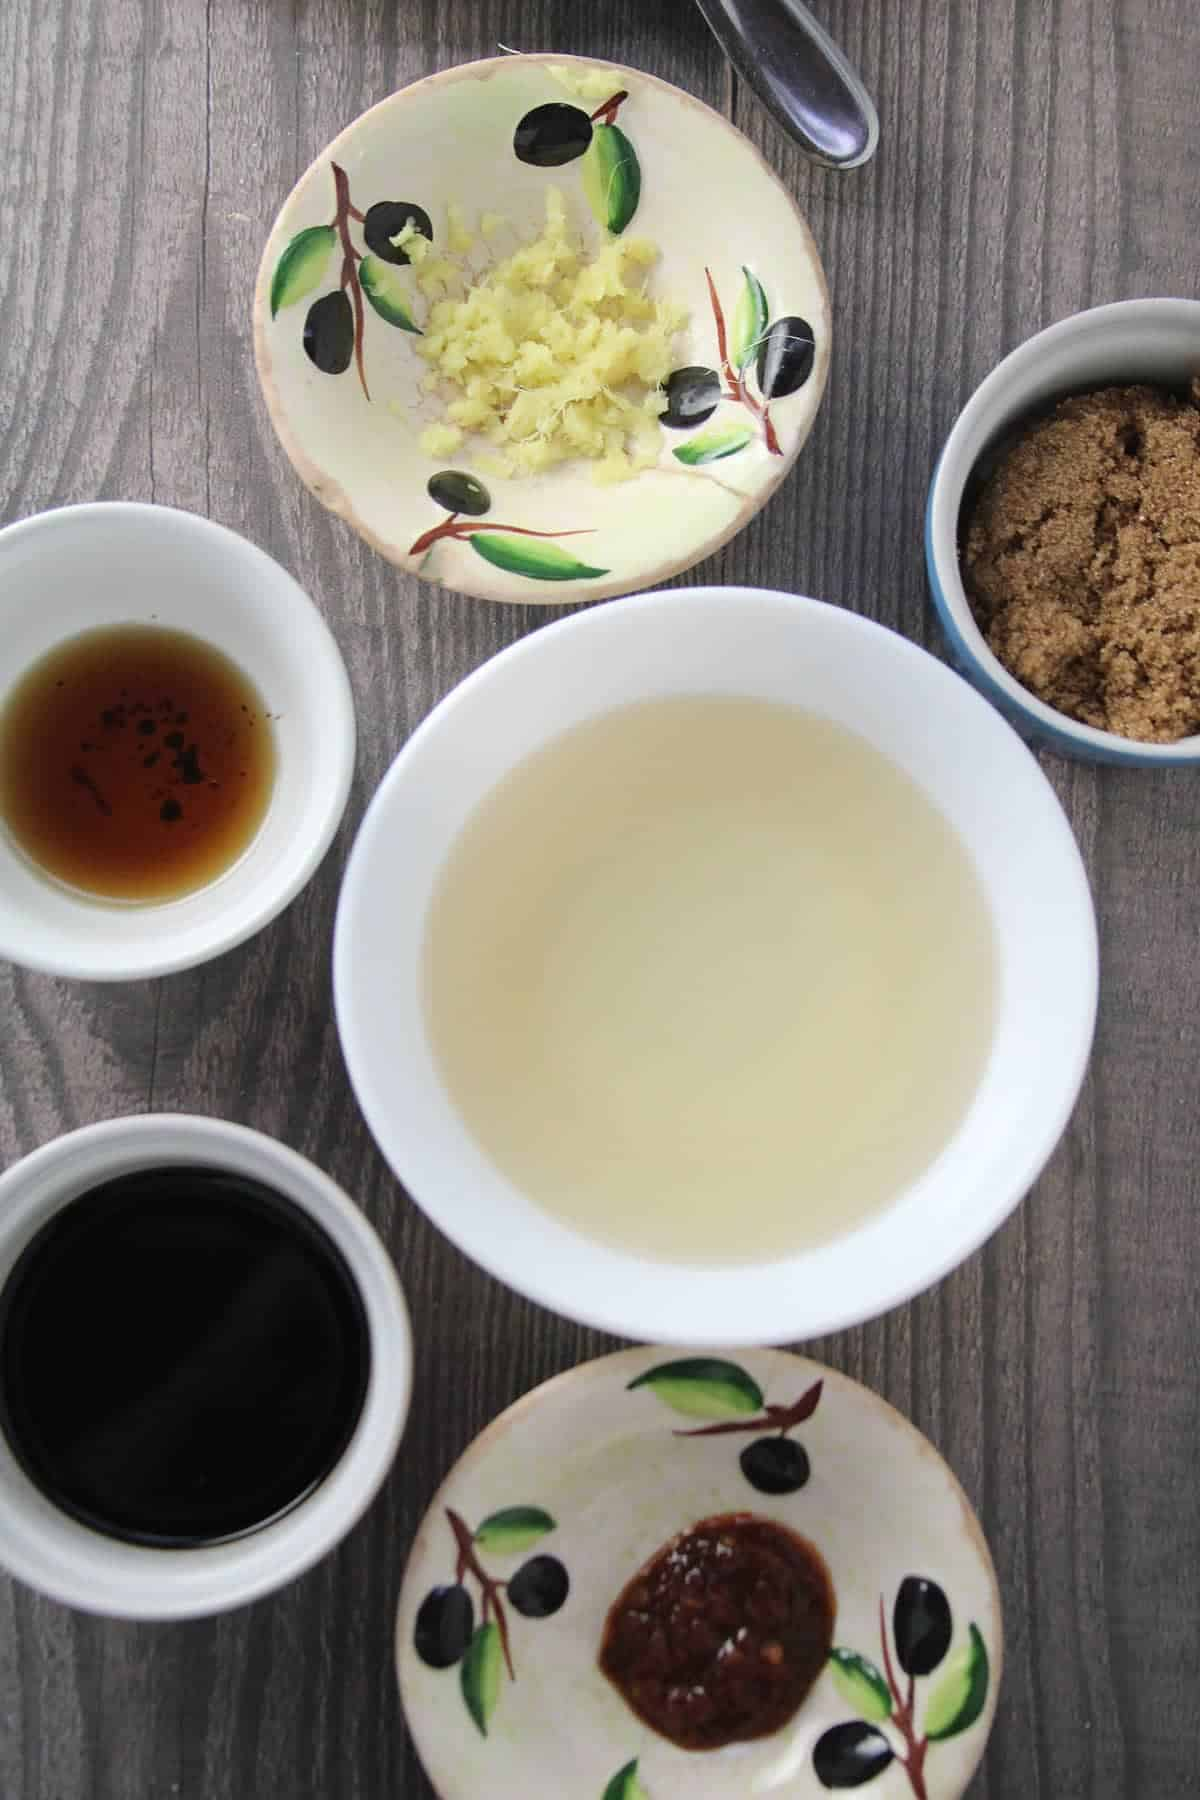 ingredients for Asian Sesame Dressing in small bowls